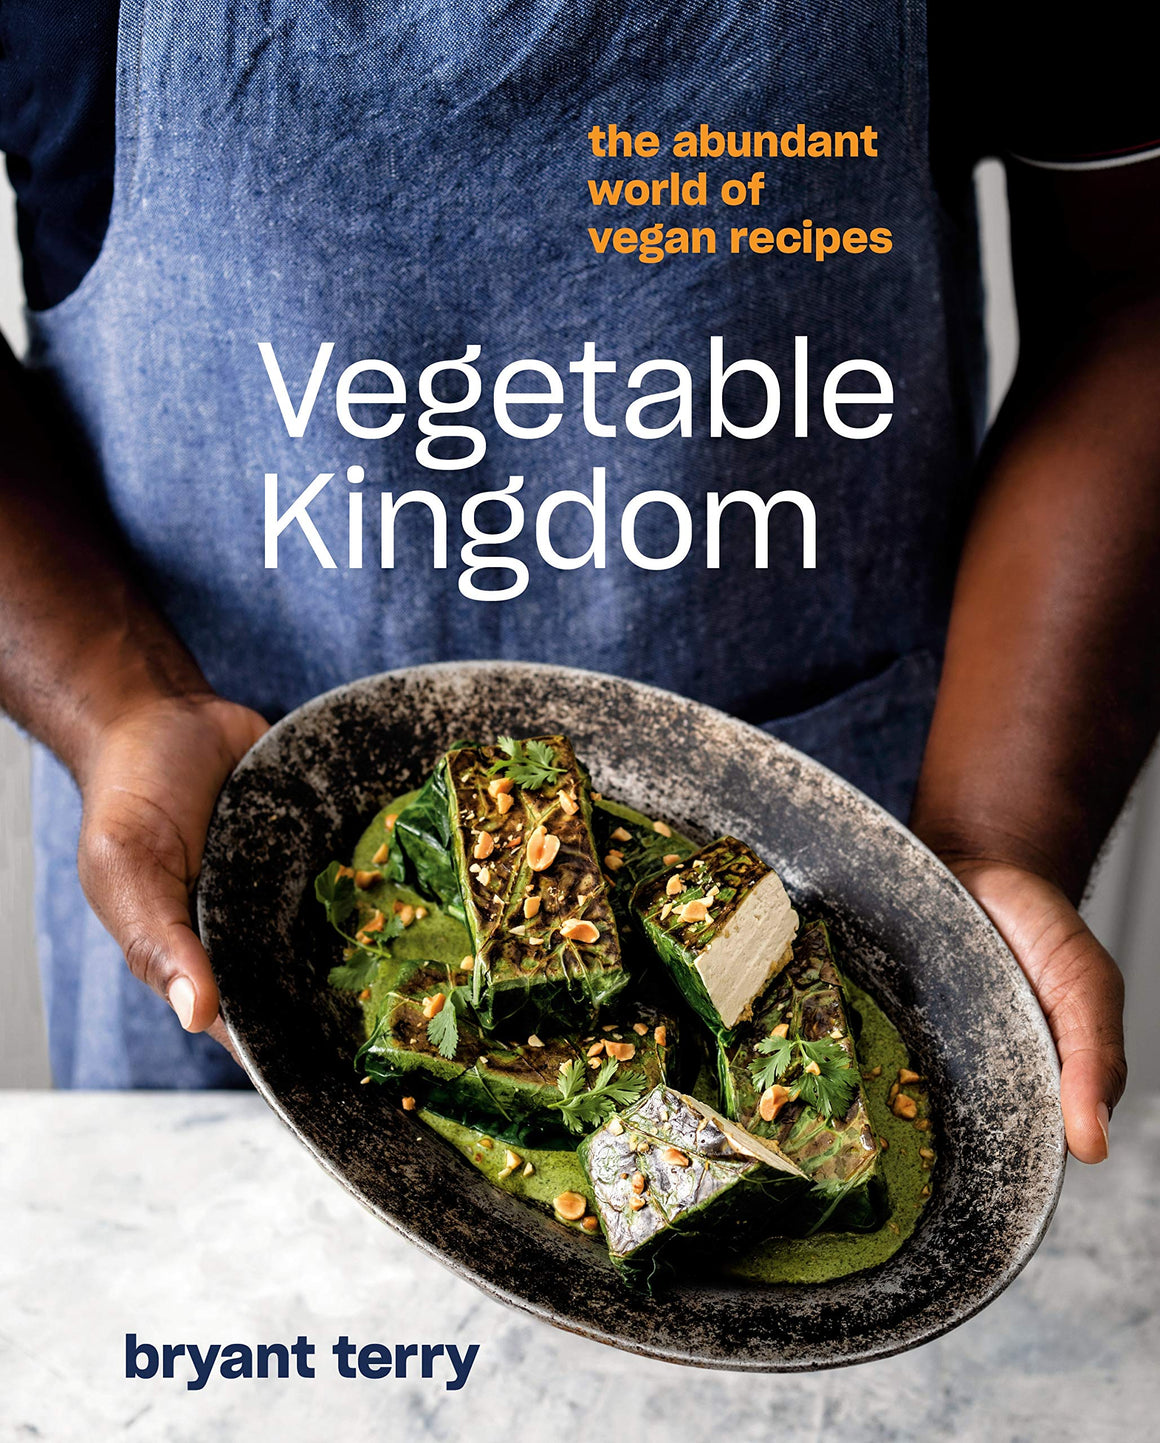 Bryant Terry. Vegetable Kingdom: The Abundant World of Vegan Recipes.